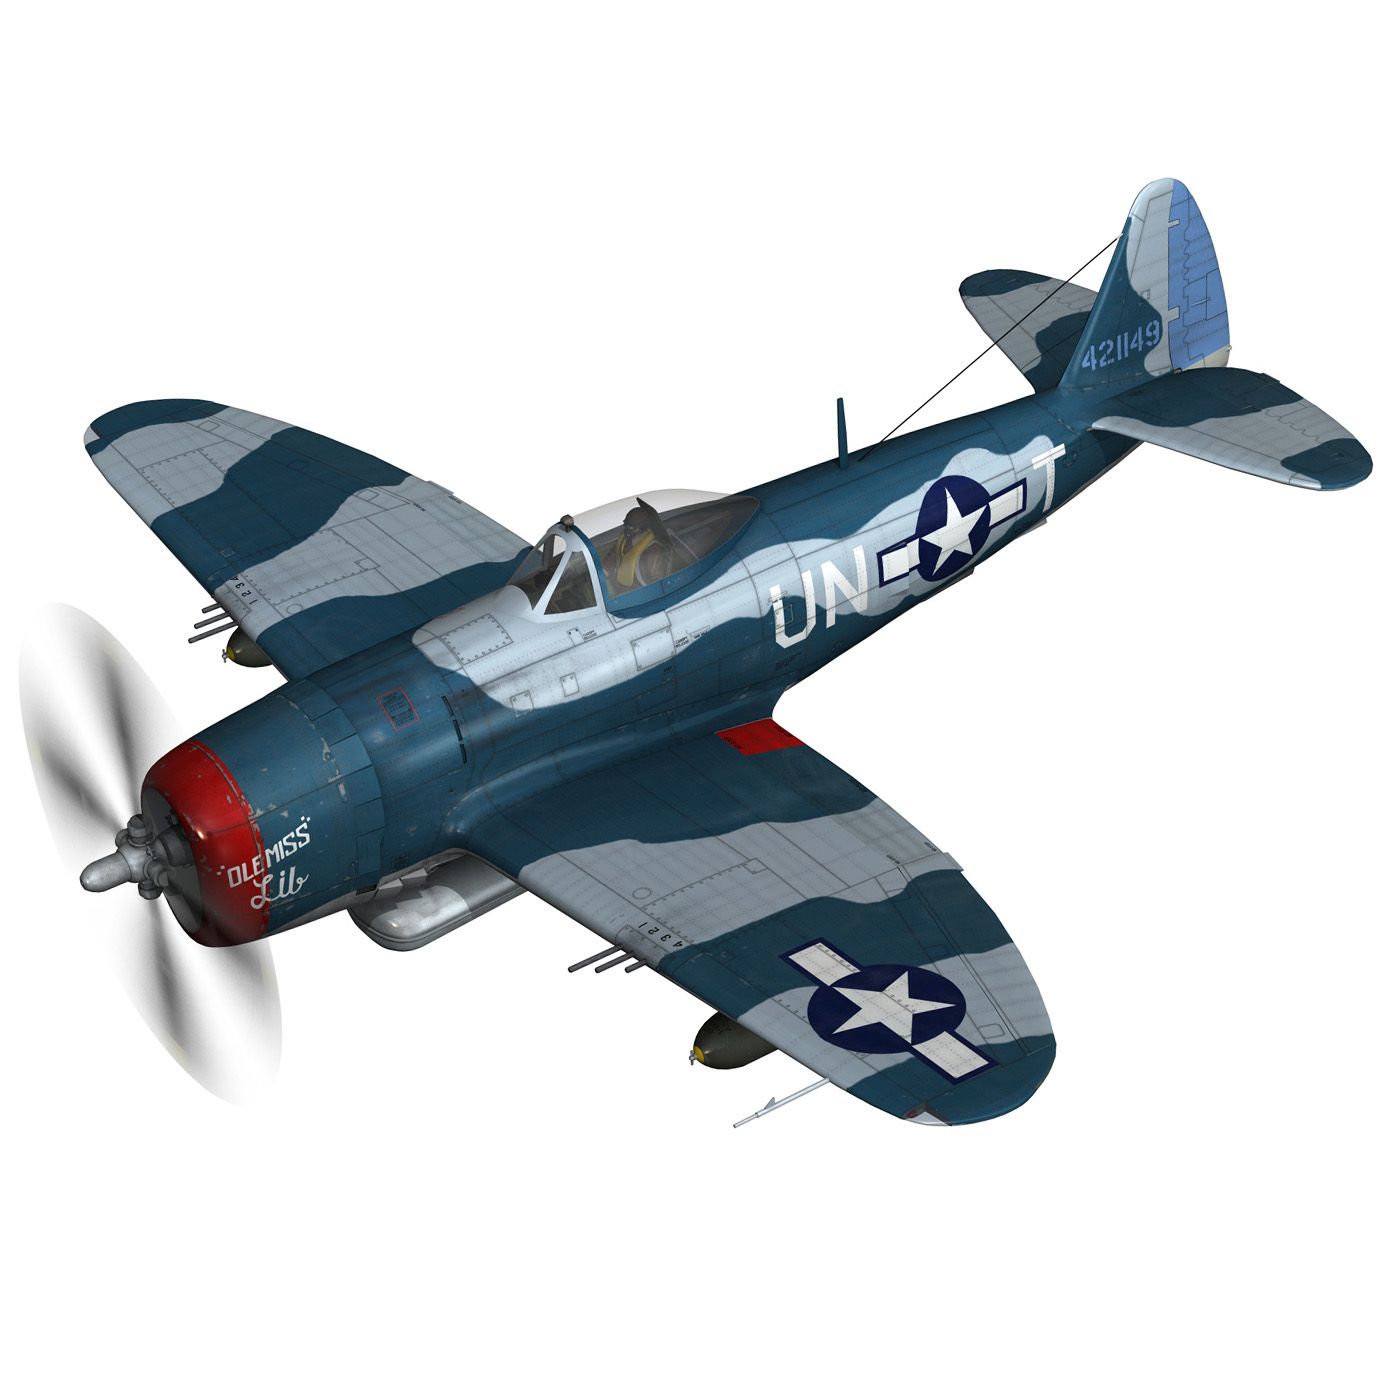 republic p-47 thunderbolt – ole miss lib 3d model fbx c4d lwo obj 274275